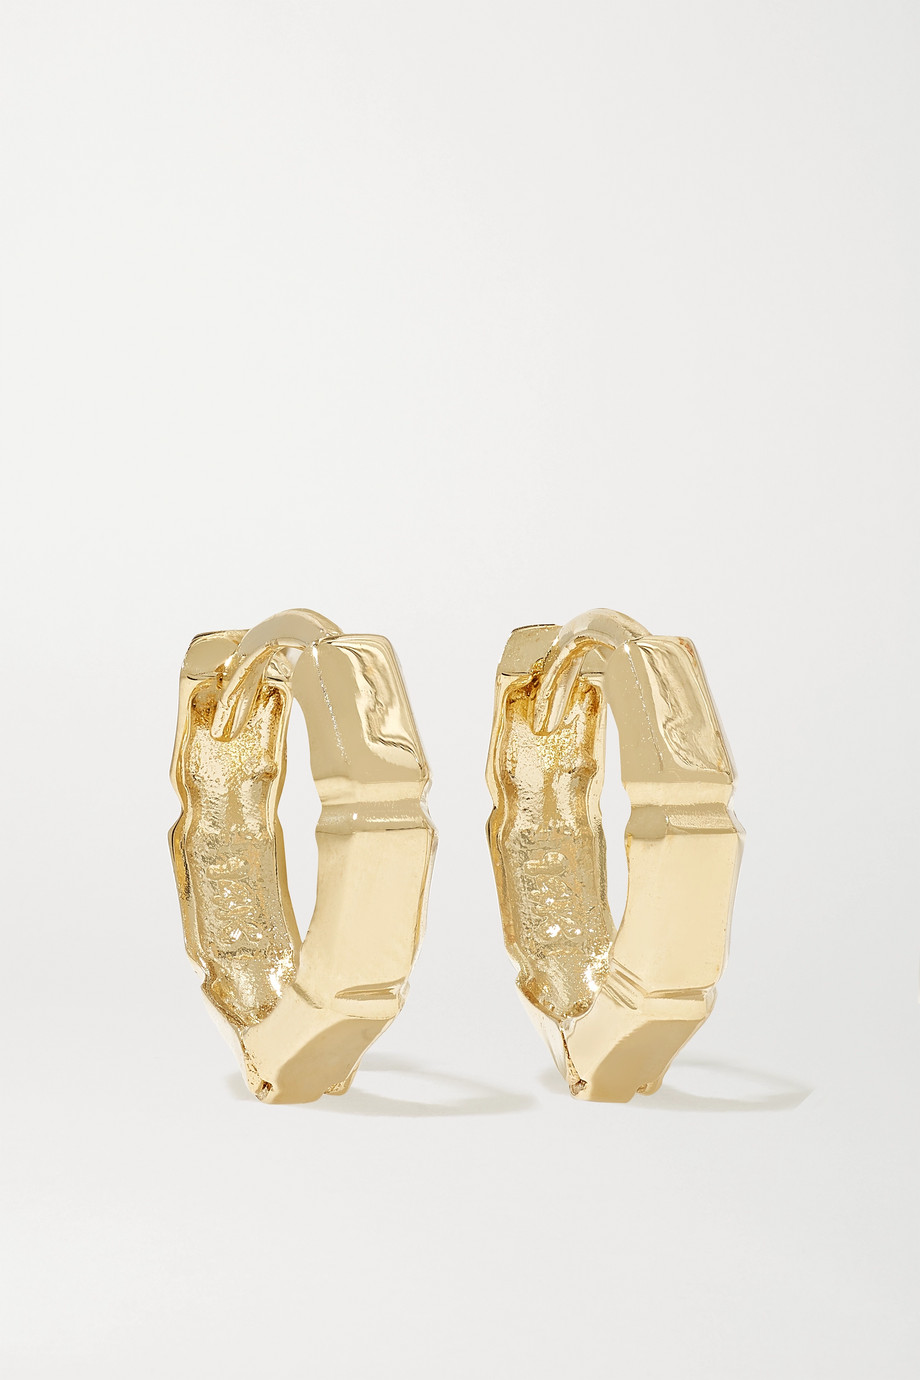 Mateo 14-karat gold earrings